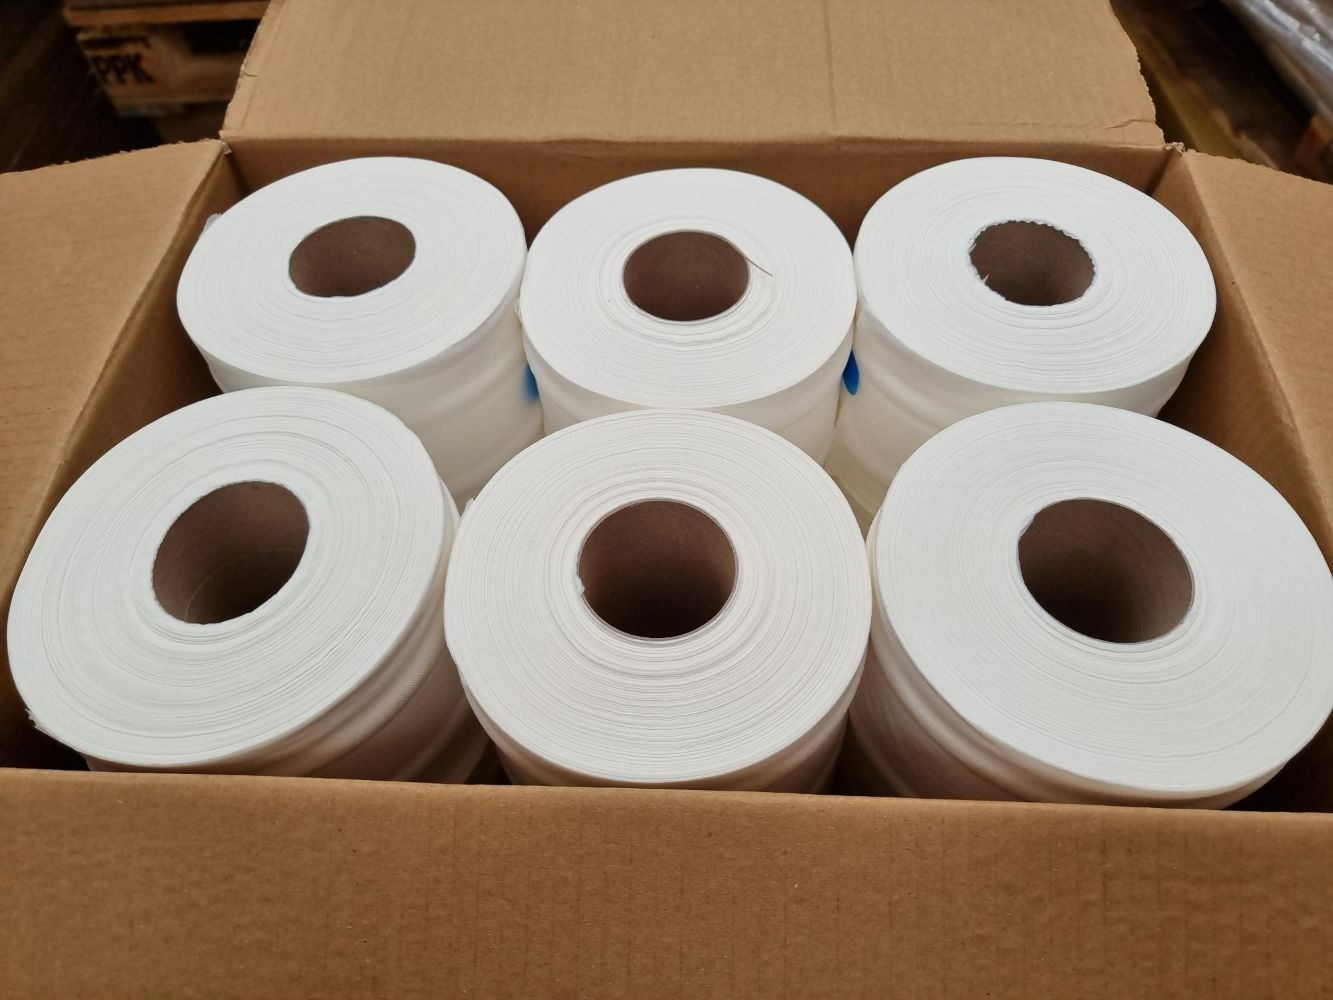 Pallets of New Centre Feed Toilet Rolls